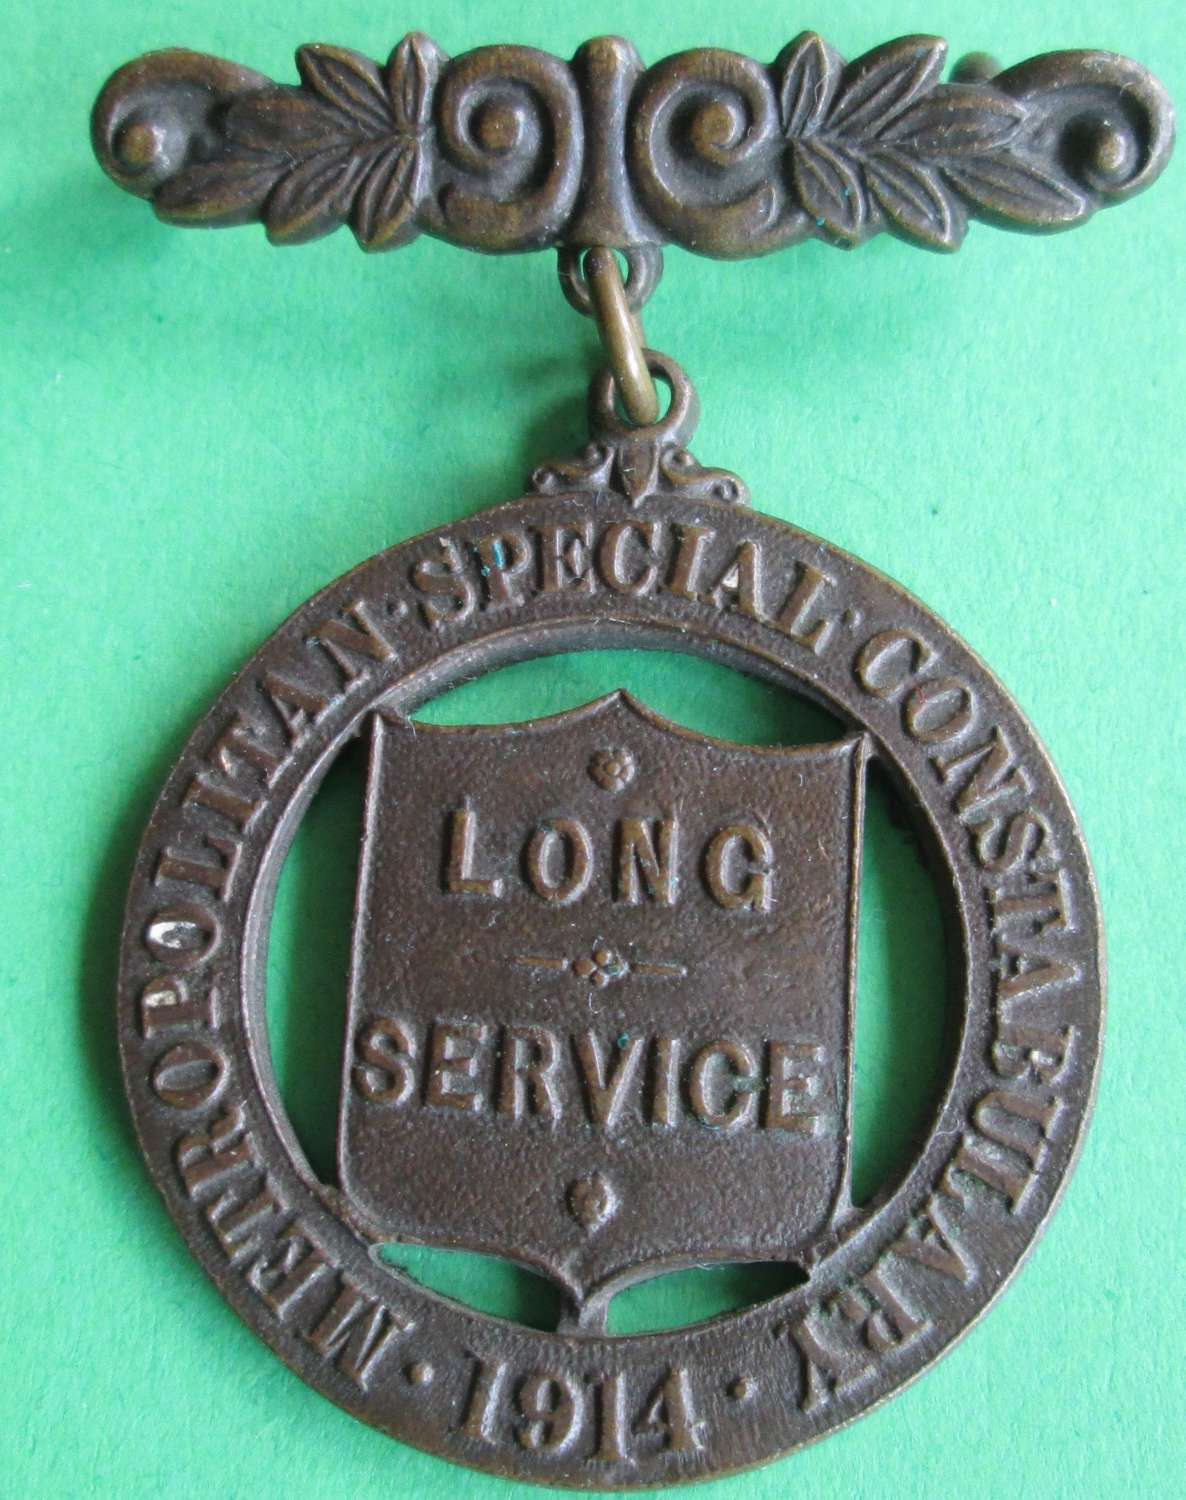 A WWI BRONZE SPECIAL CONSTABULARY LONG SERVICE MEDAL